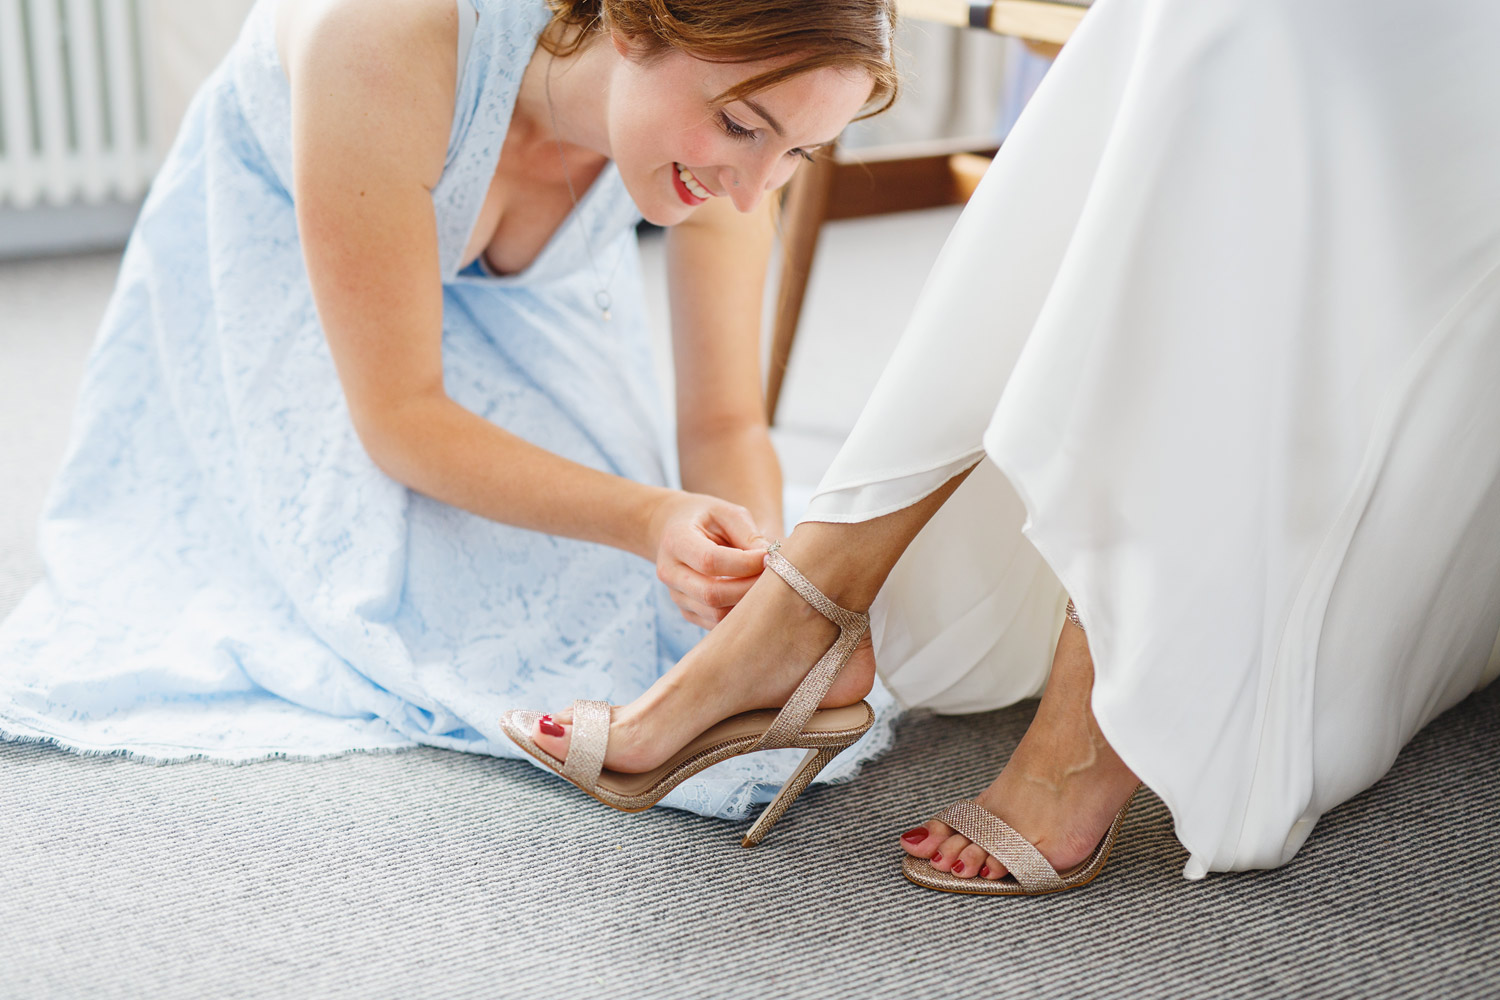 A bridesmaid puts on the bride's weddig shoes at The Laslett Hotel in London - wedding photographer